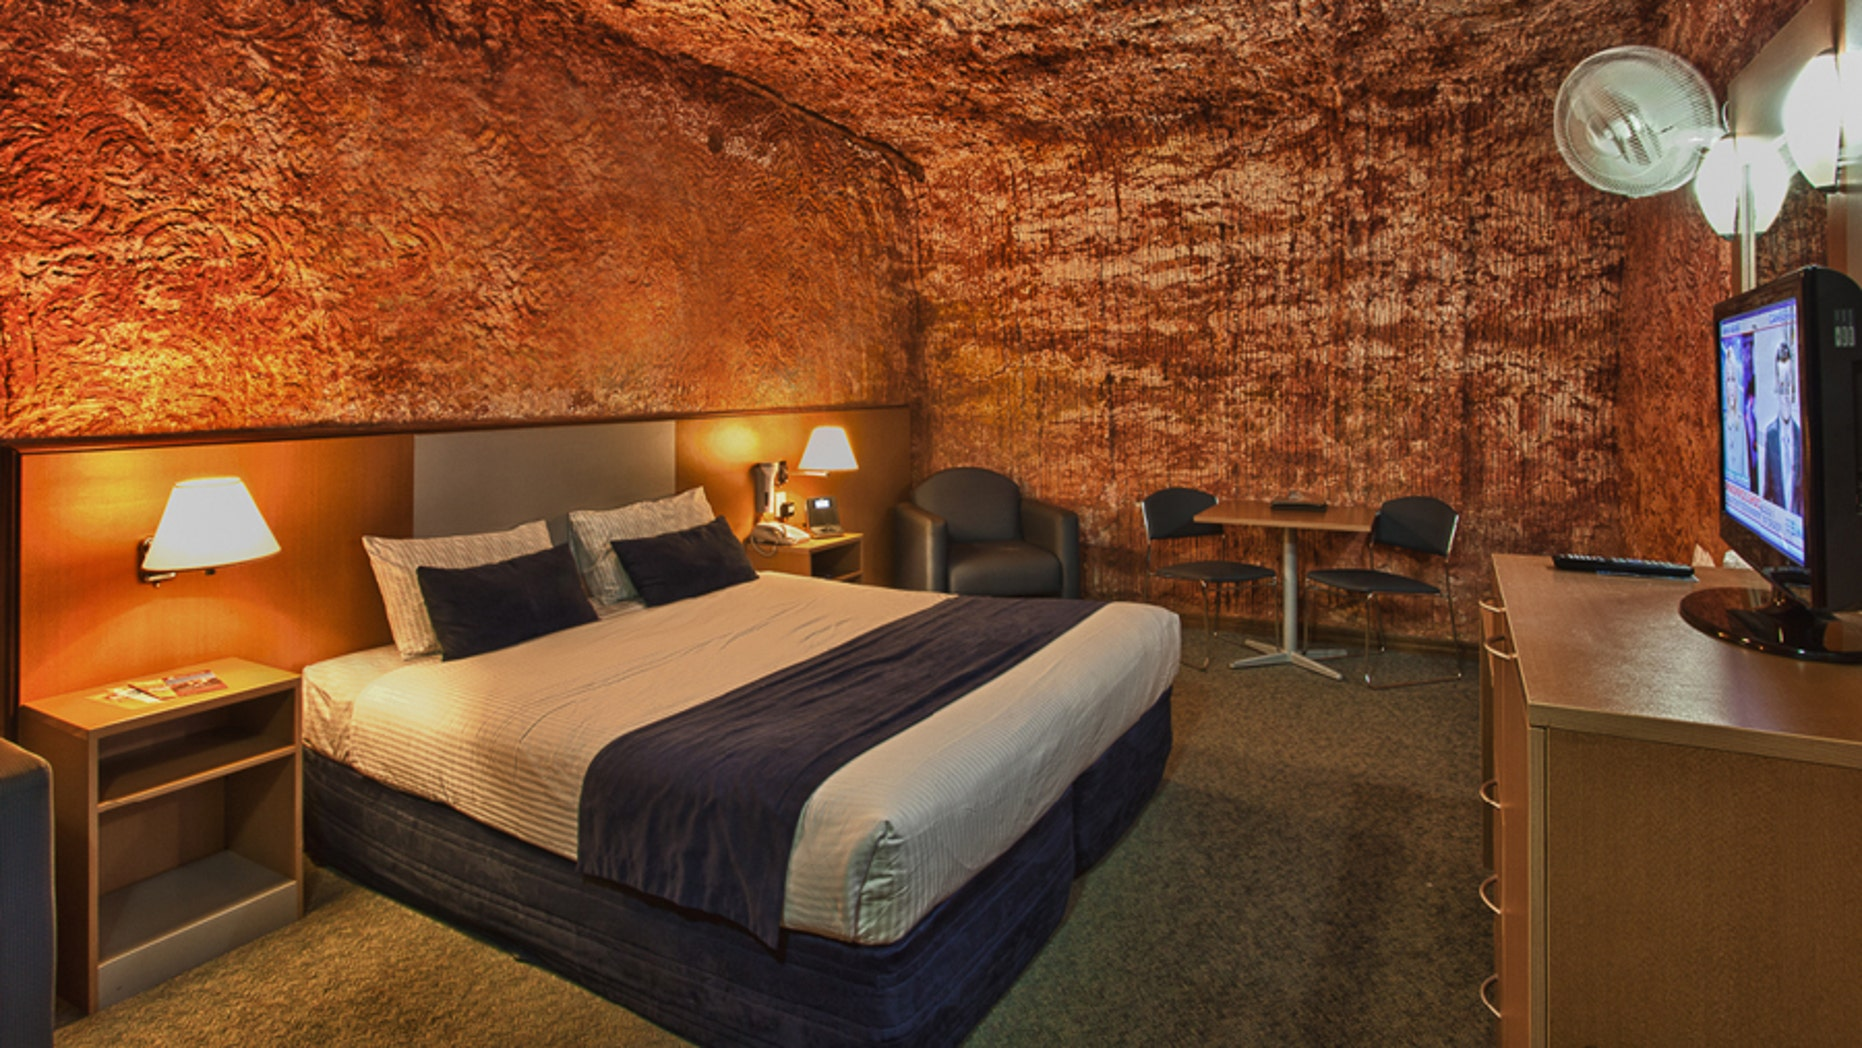 Underground places to stay in the Desert Cave Hotel, Australia